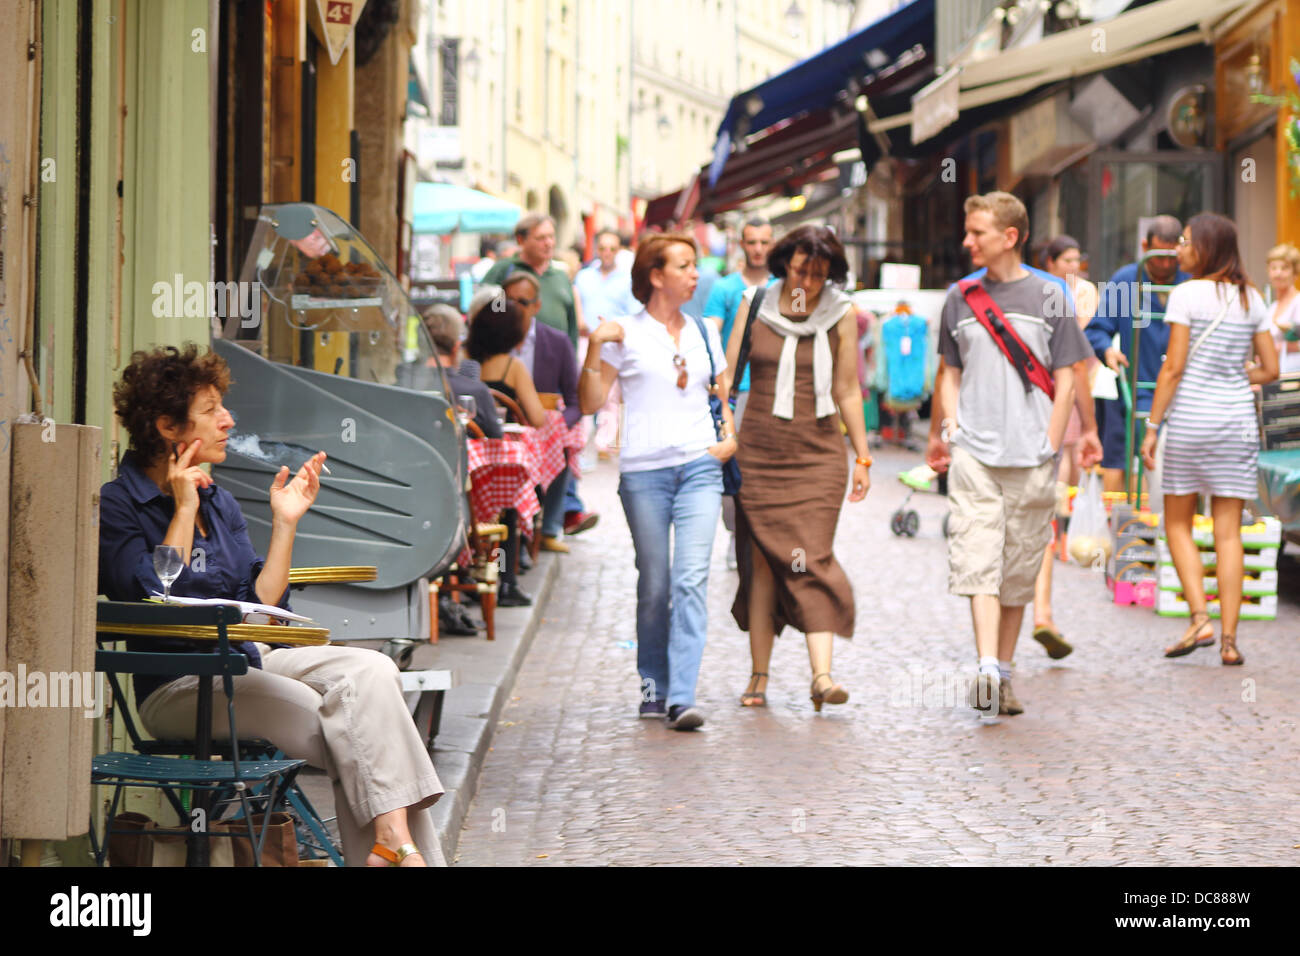 Mouffetard street in the 5th arrondissement of Paris - tourists strolling at paved street, lady smoking in the tiny - Stock Image